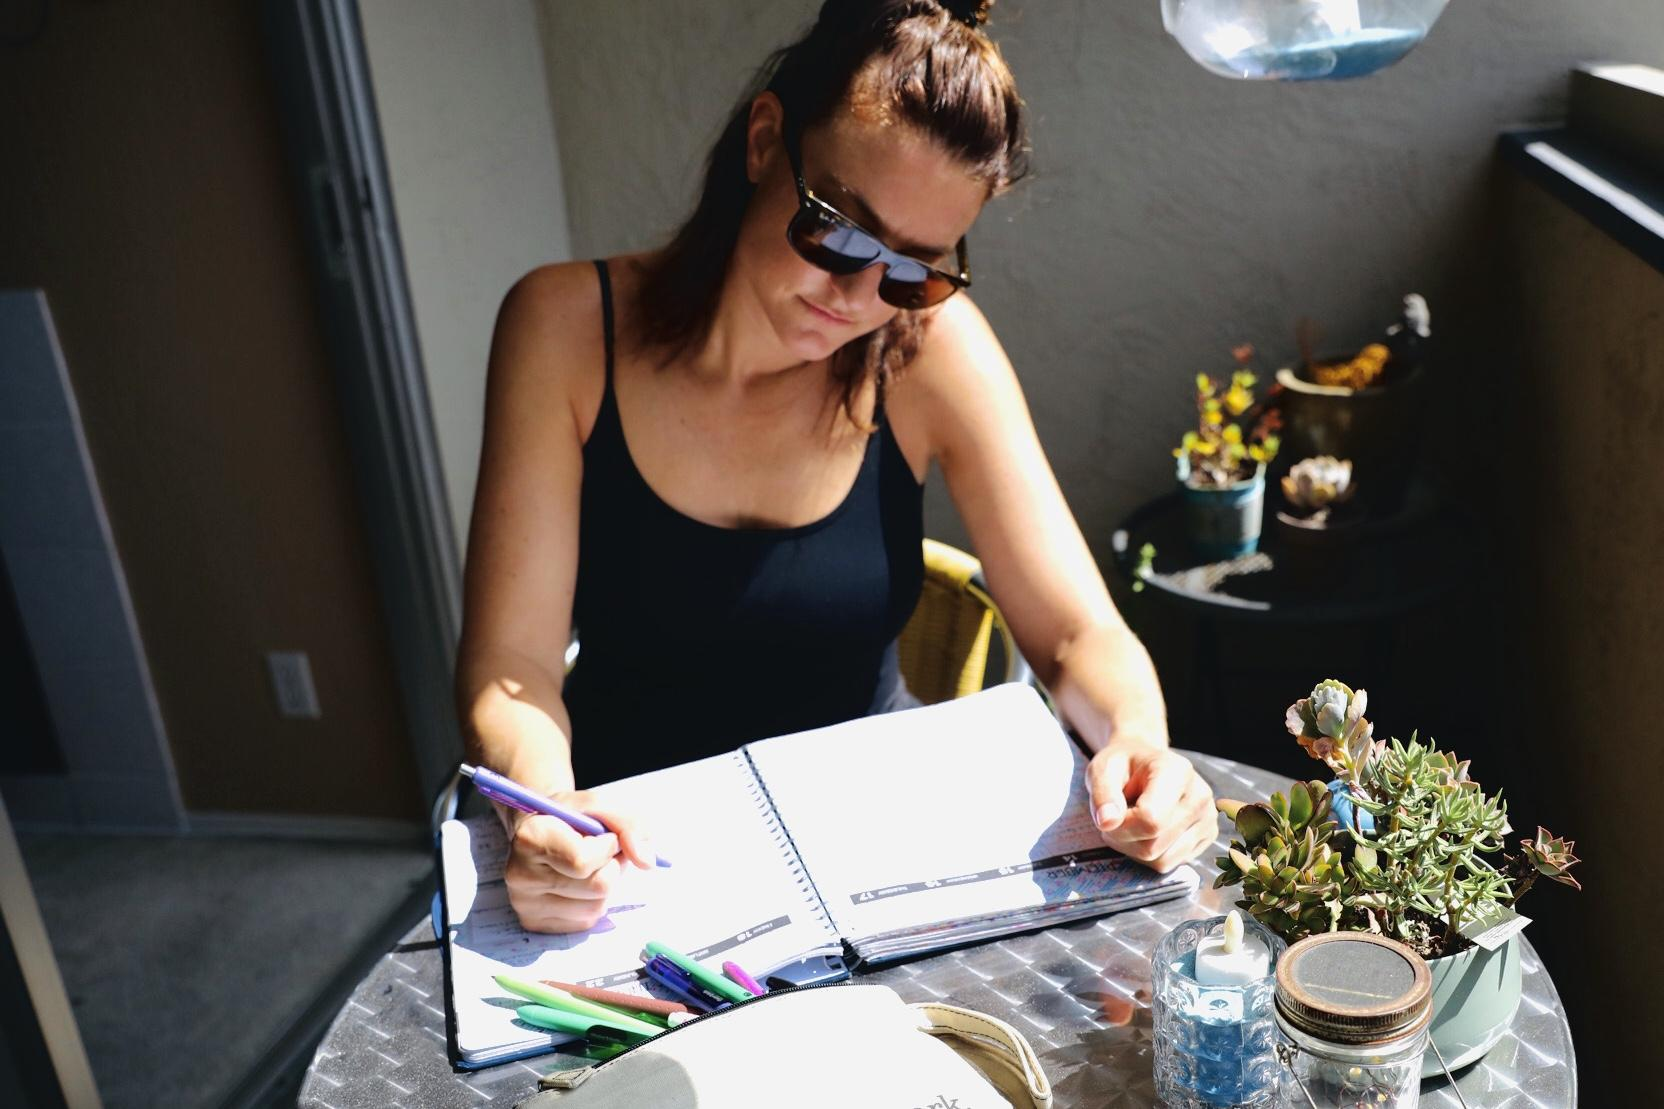 A woman in sunglasses sitting outside has a planner open with pen in hand.